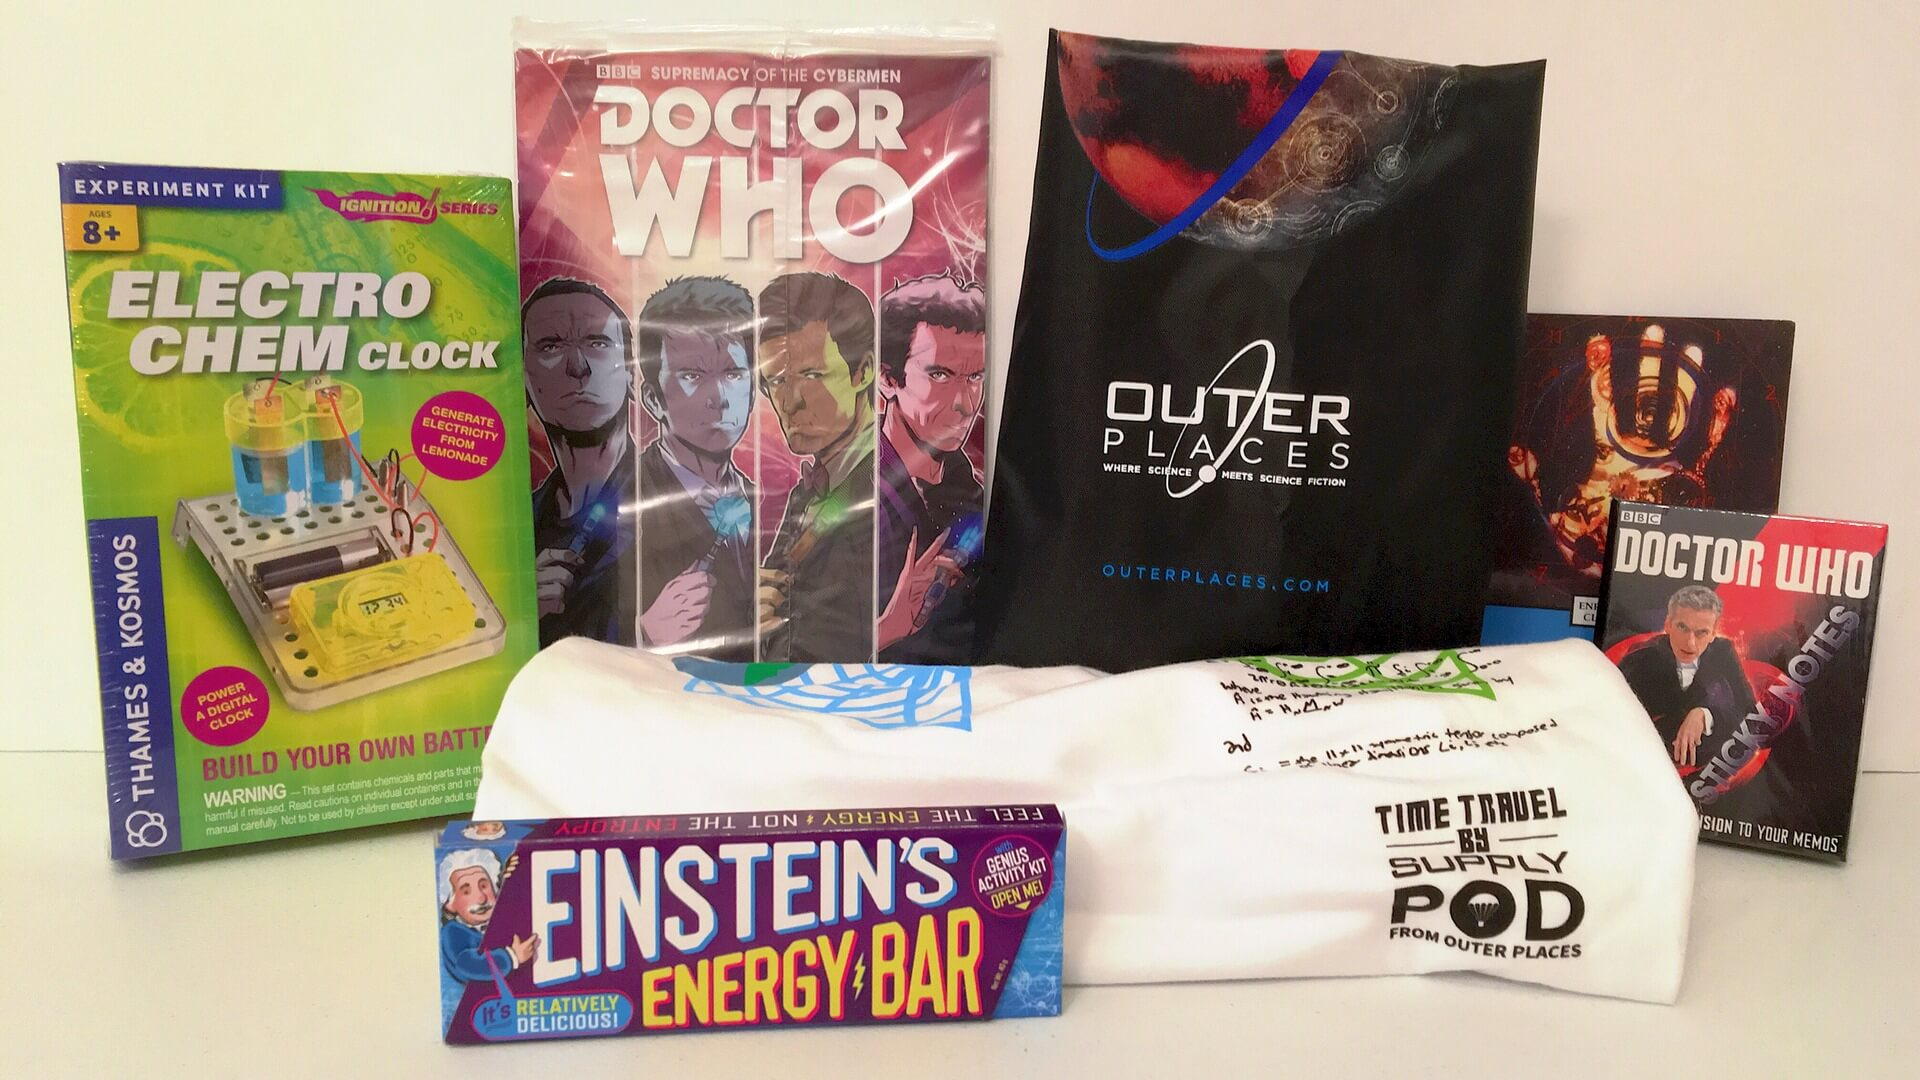 Supply Pod:  Time Travel and Doctor Who - Review